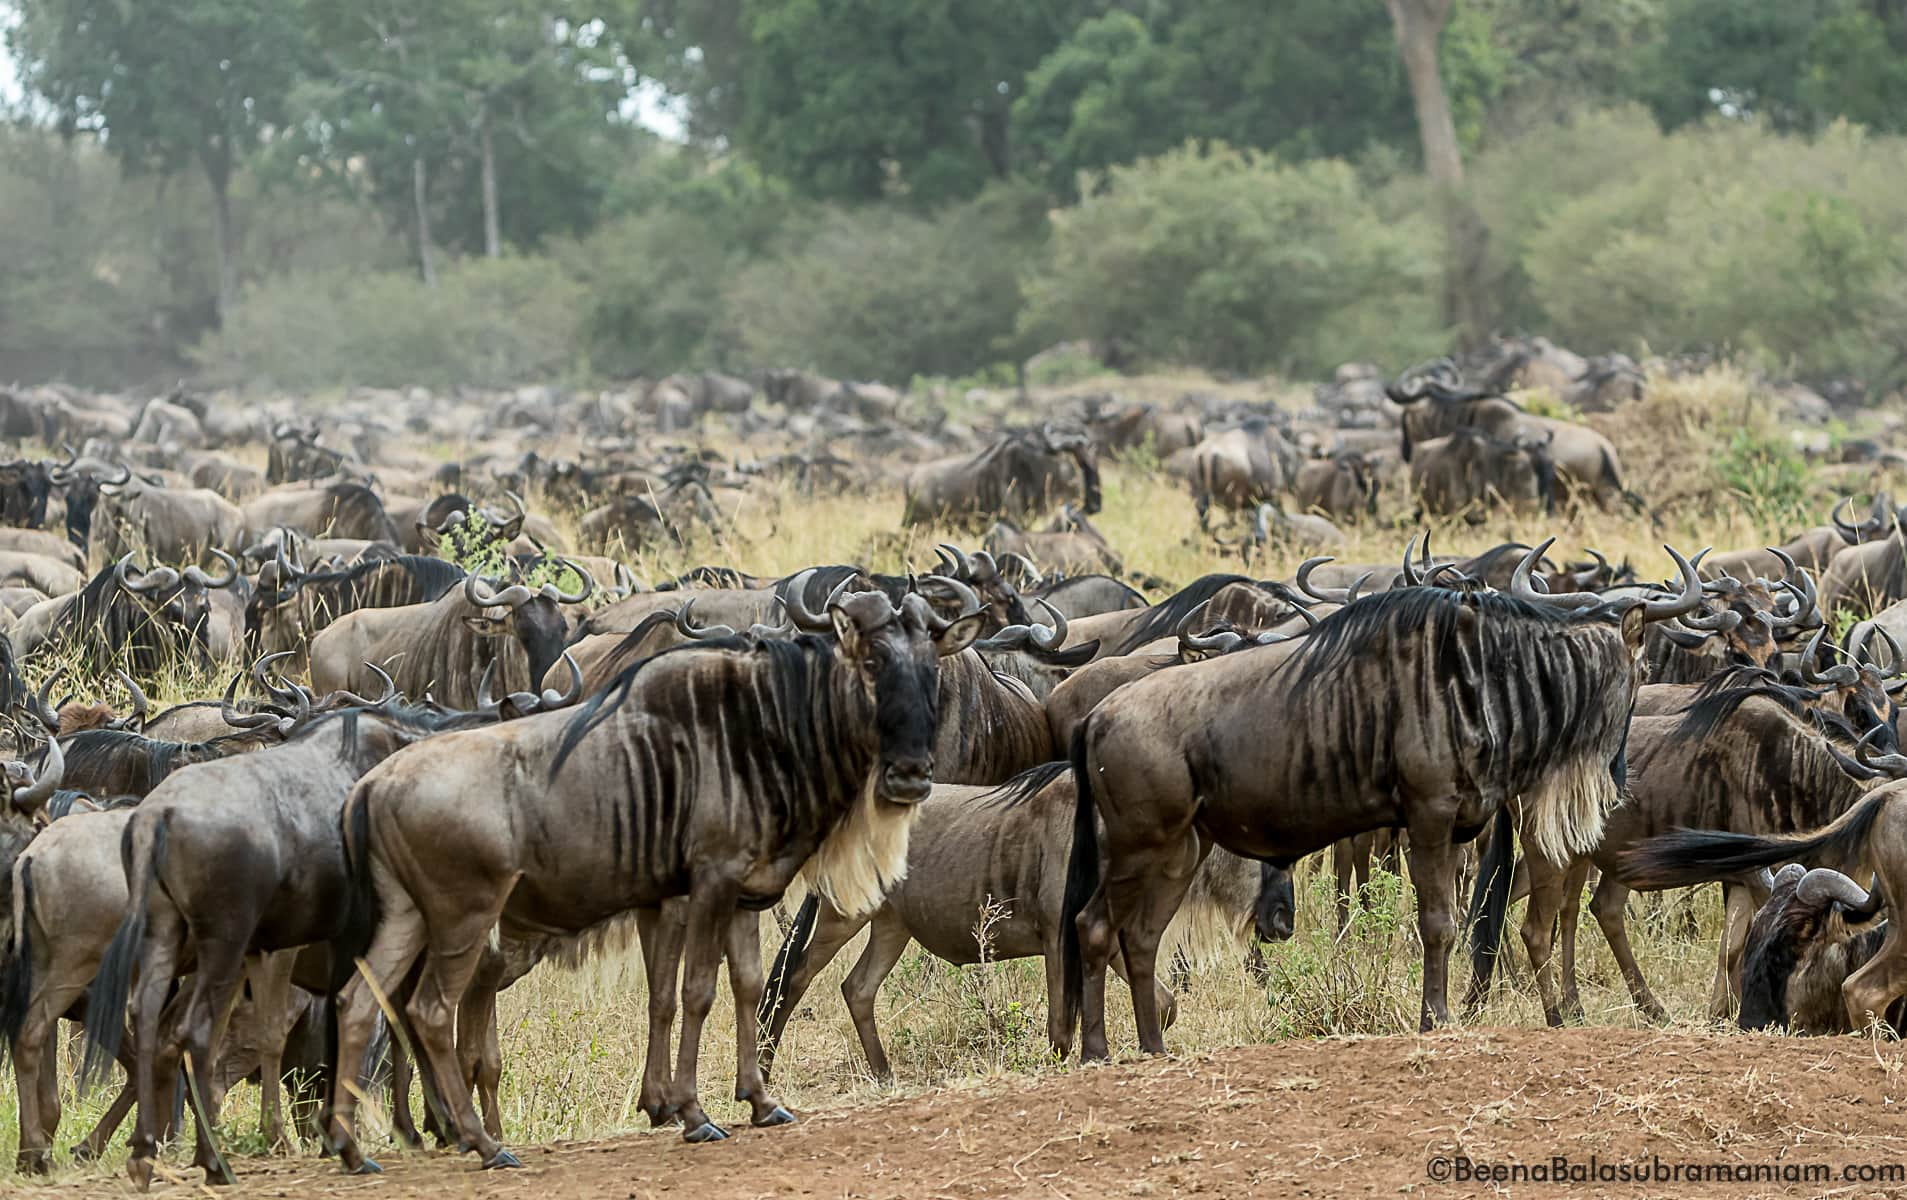 The Mega herds arrive and build up near the Sand River to cross into the Mara